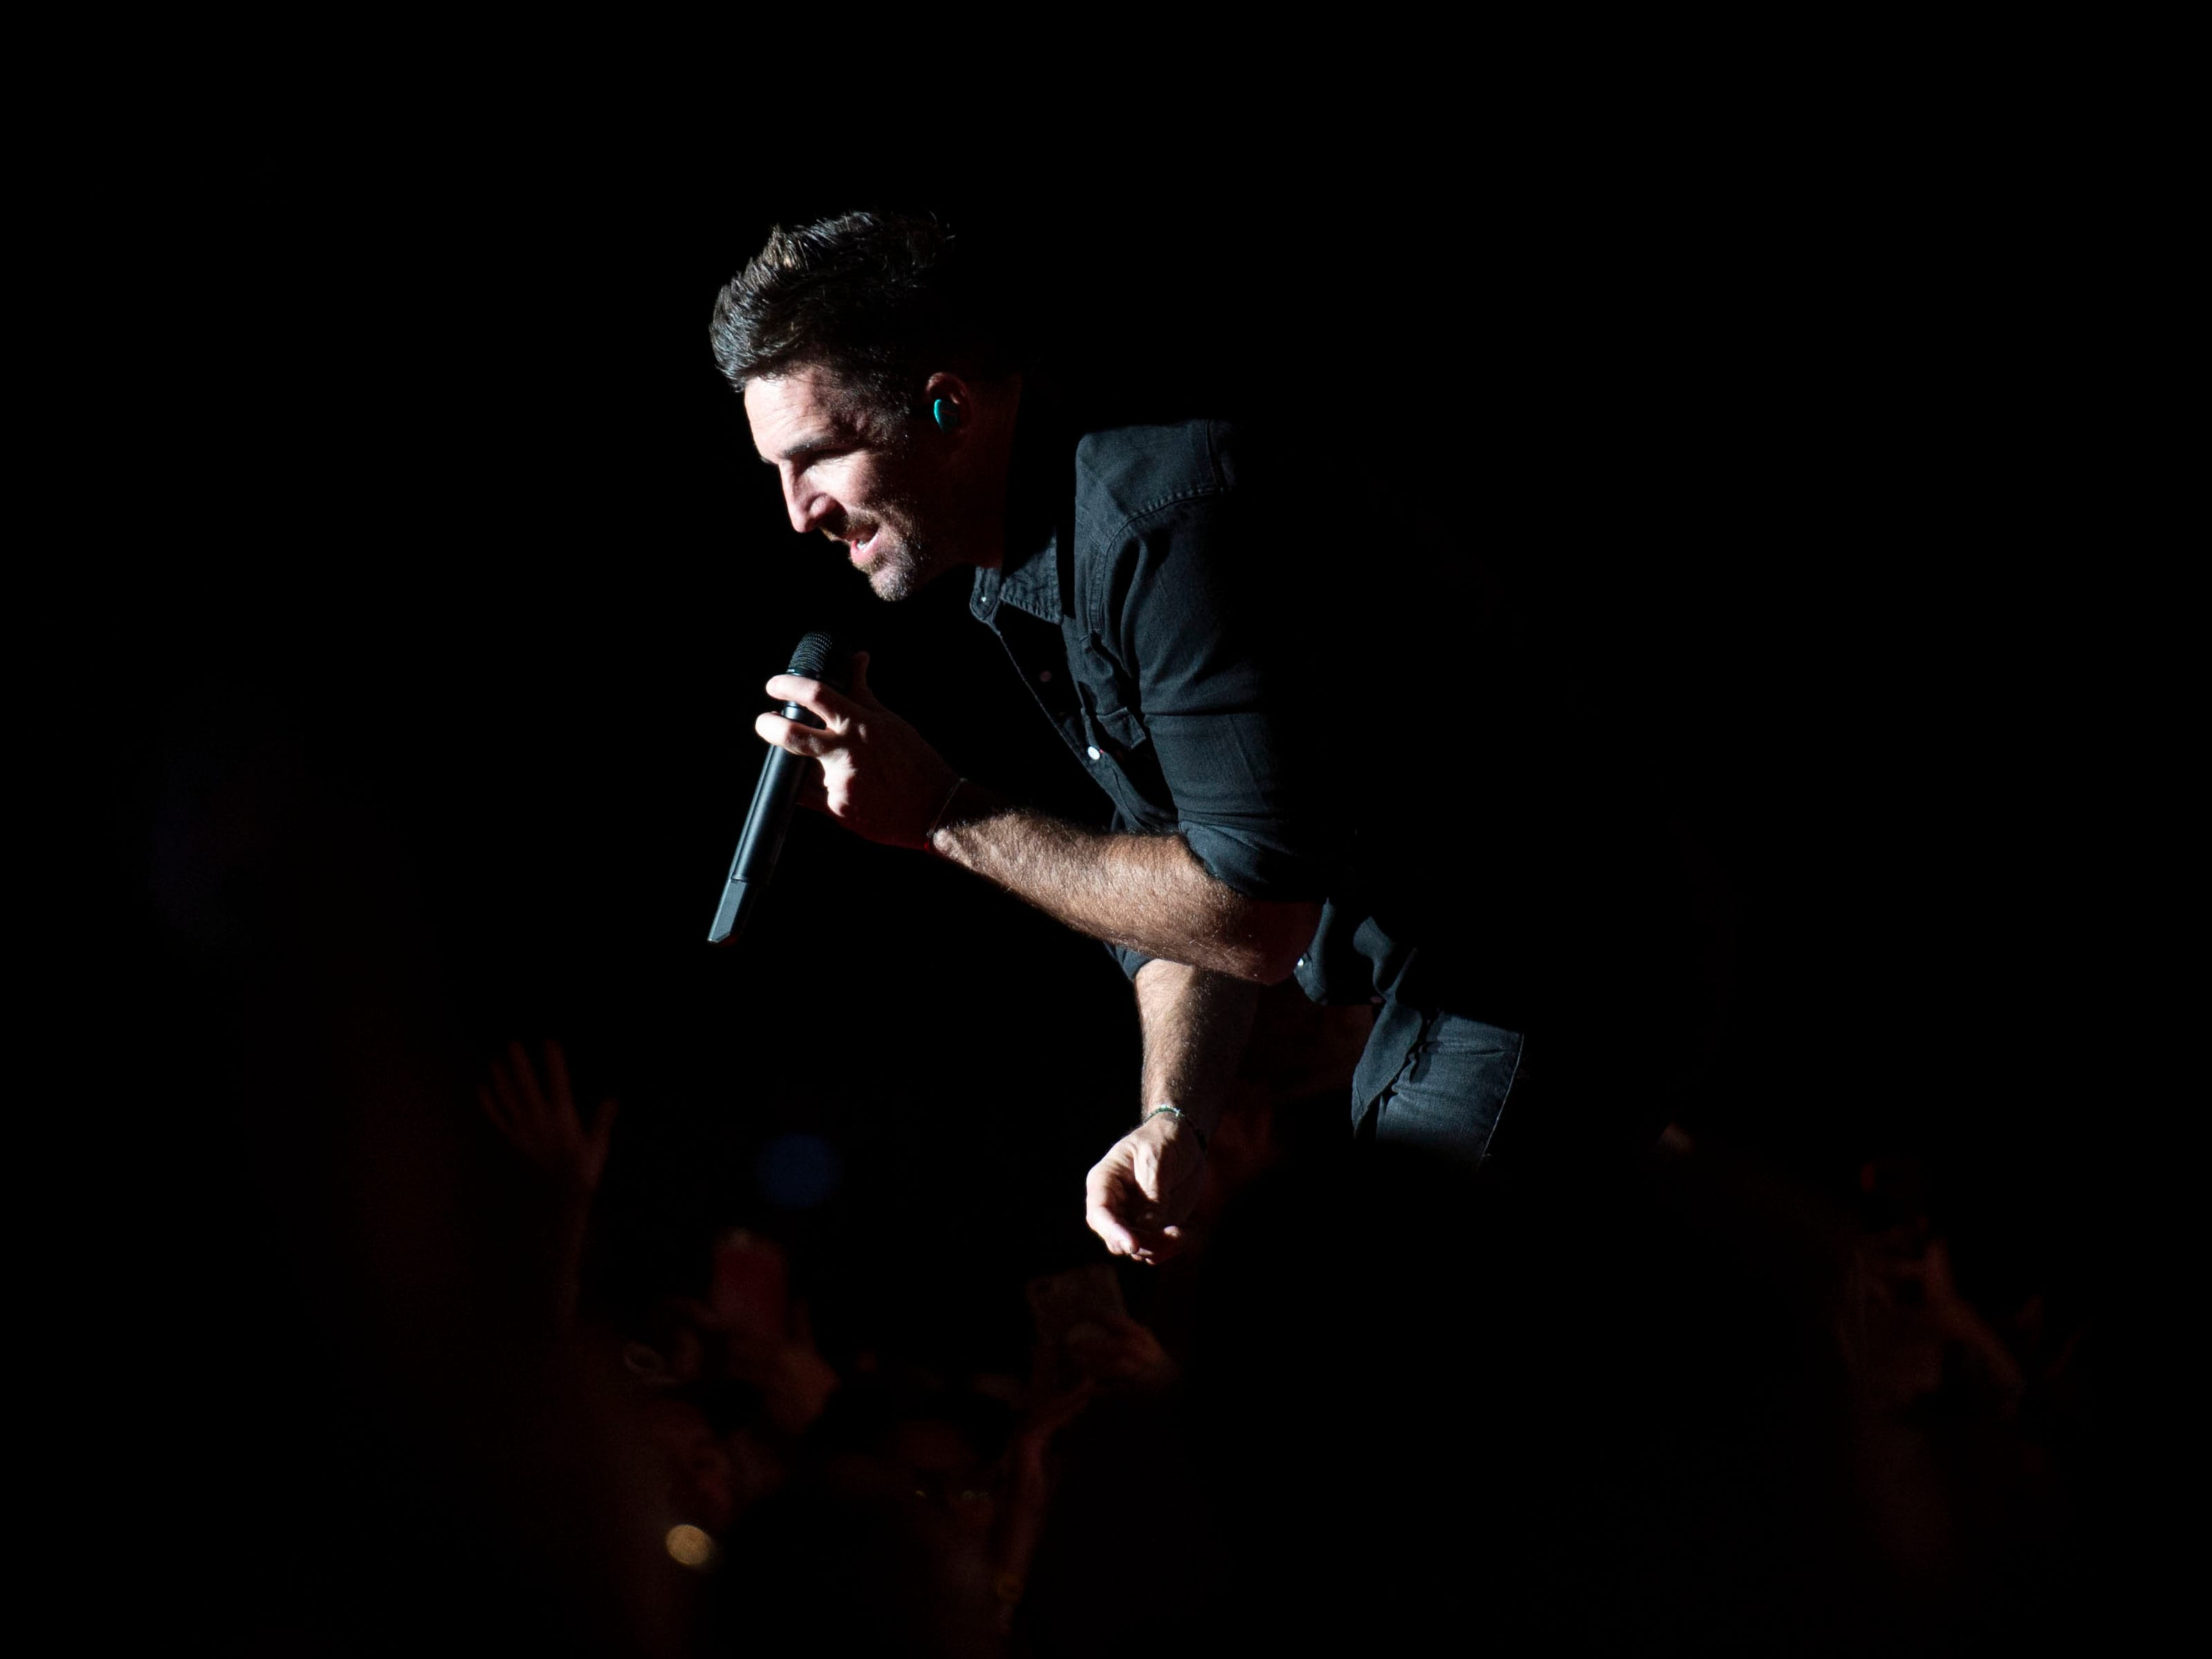 Country music star and Vero Beach native Jake Owen was joined by Joe Diffie, Chris Lane and Morgan Walden, for 12th annual Jake Owen Foundation Benefit Concert on Dec. 8, 2018 at the Indian River County Fairgrounds.